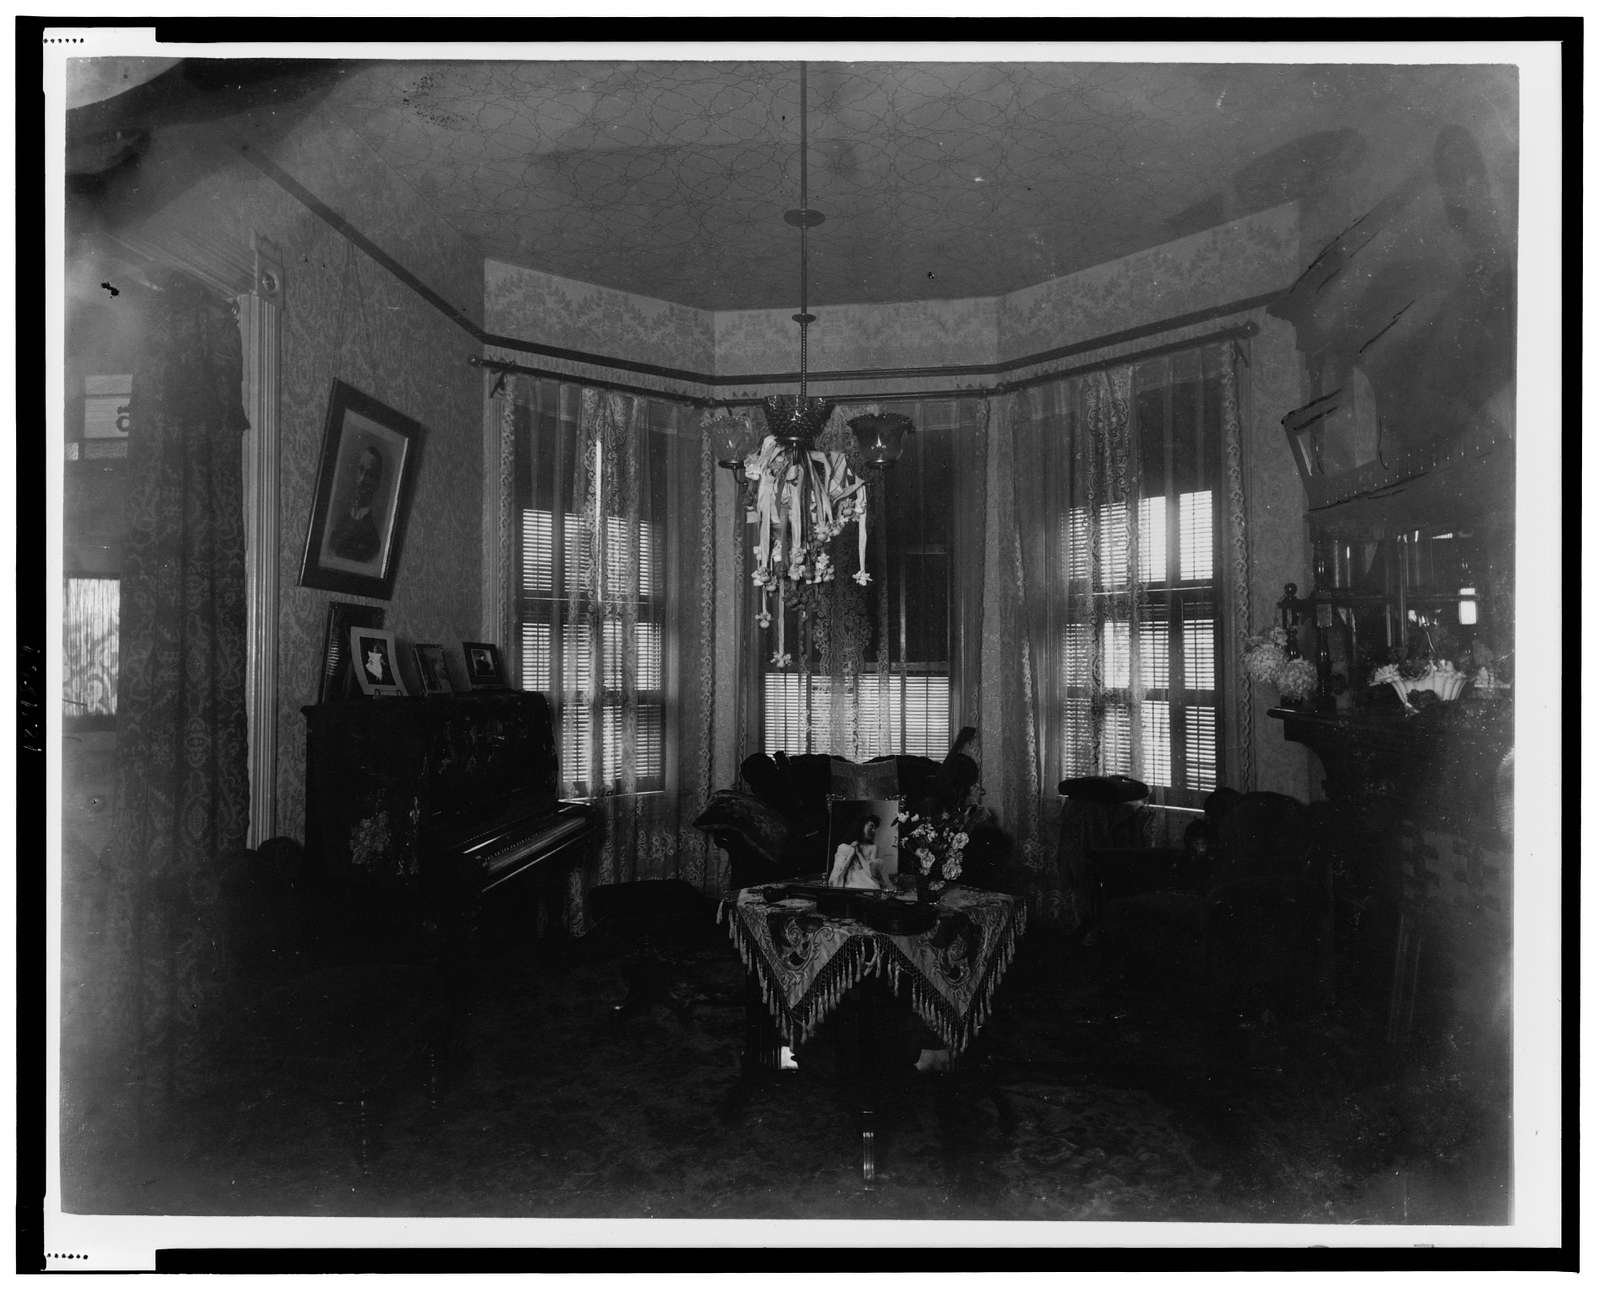 [Interior view of room showing furniture, piano, and chandelier]